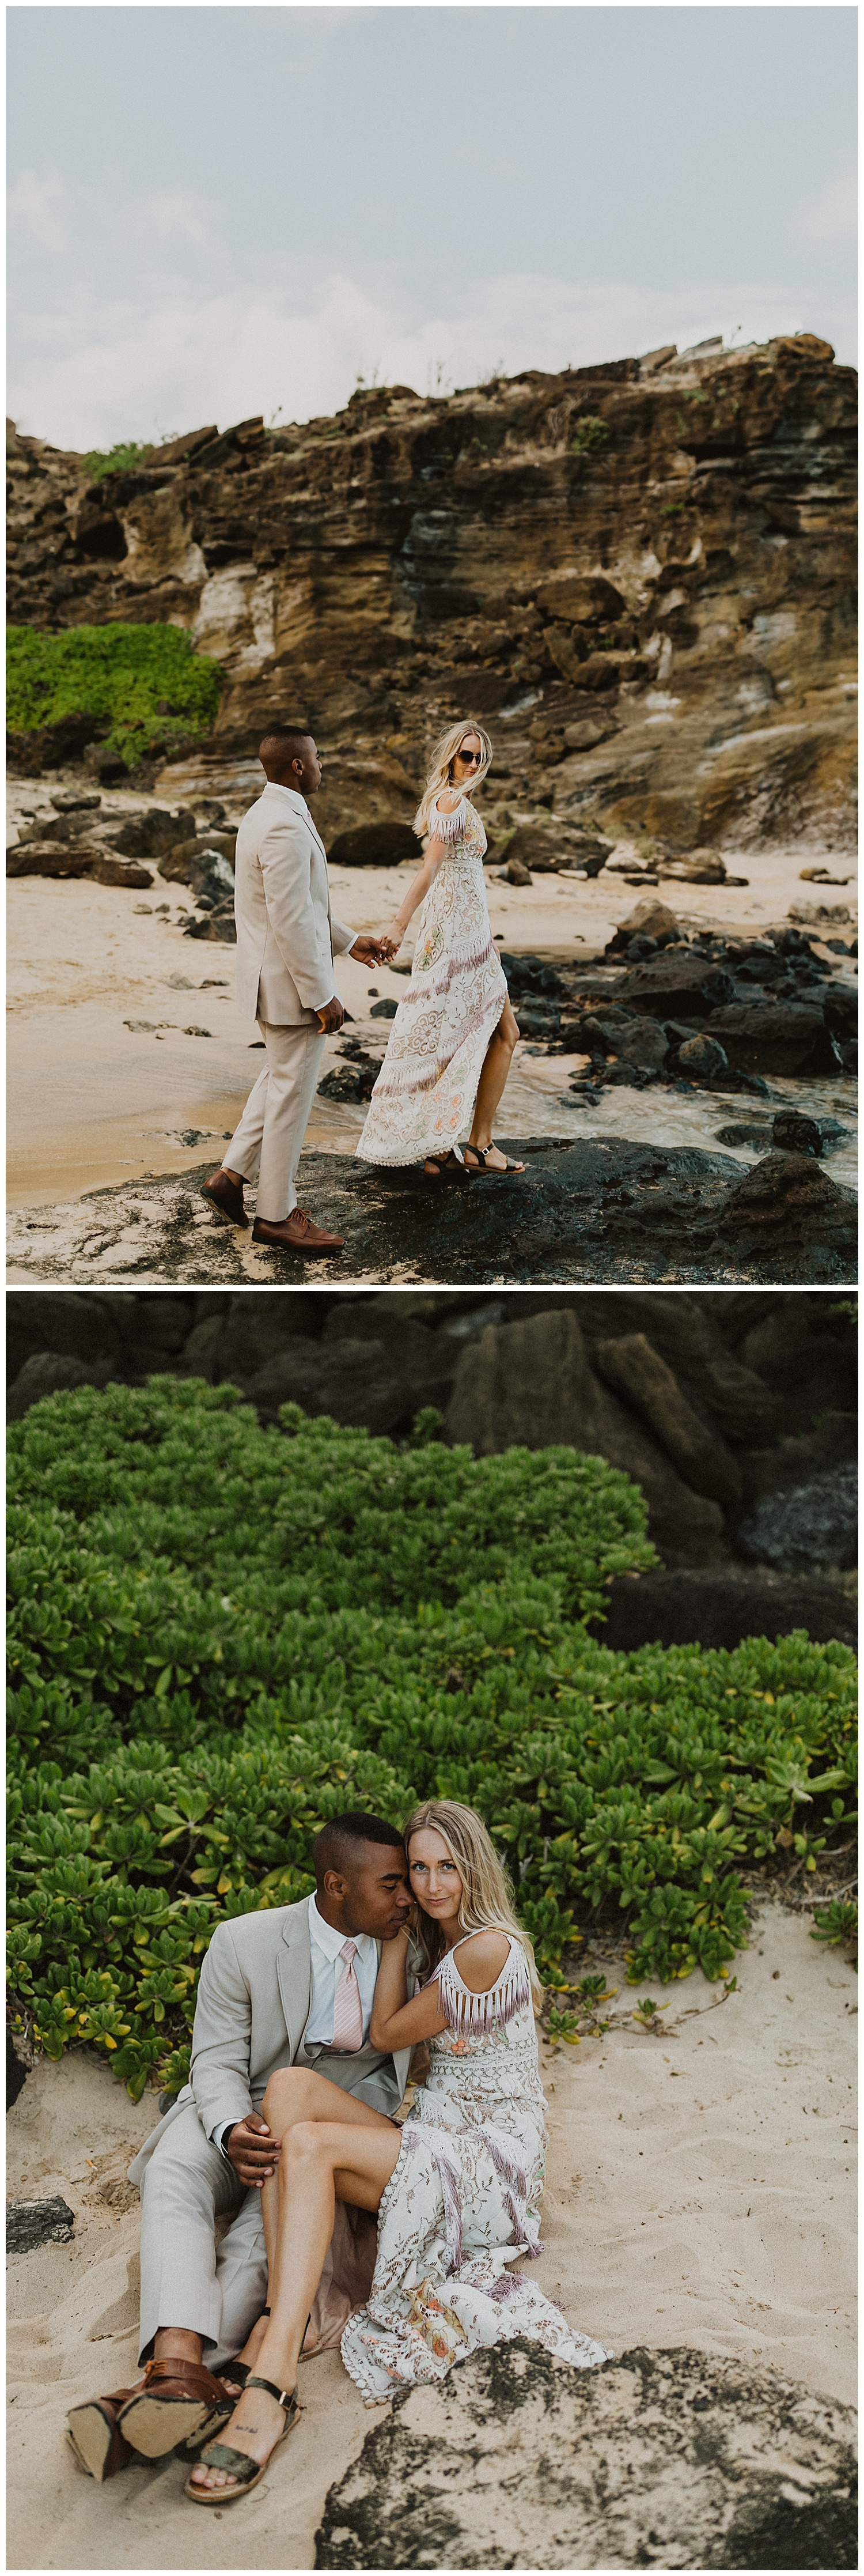 hawaii-oahu-elopement-wedding-photographer 20.jpg